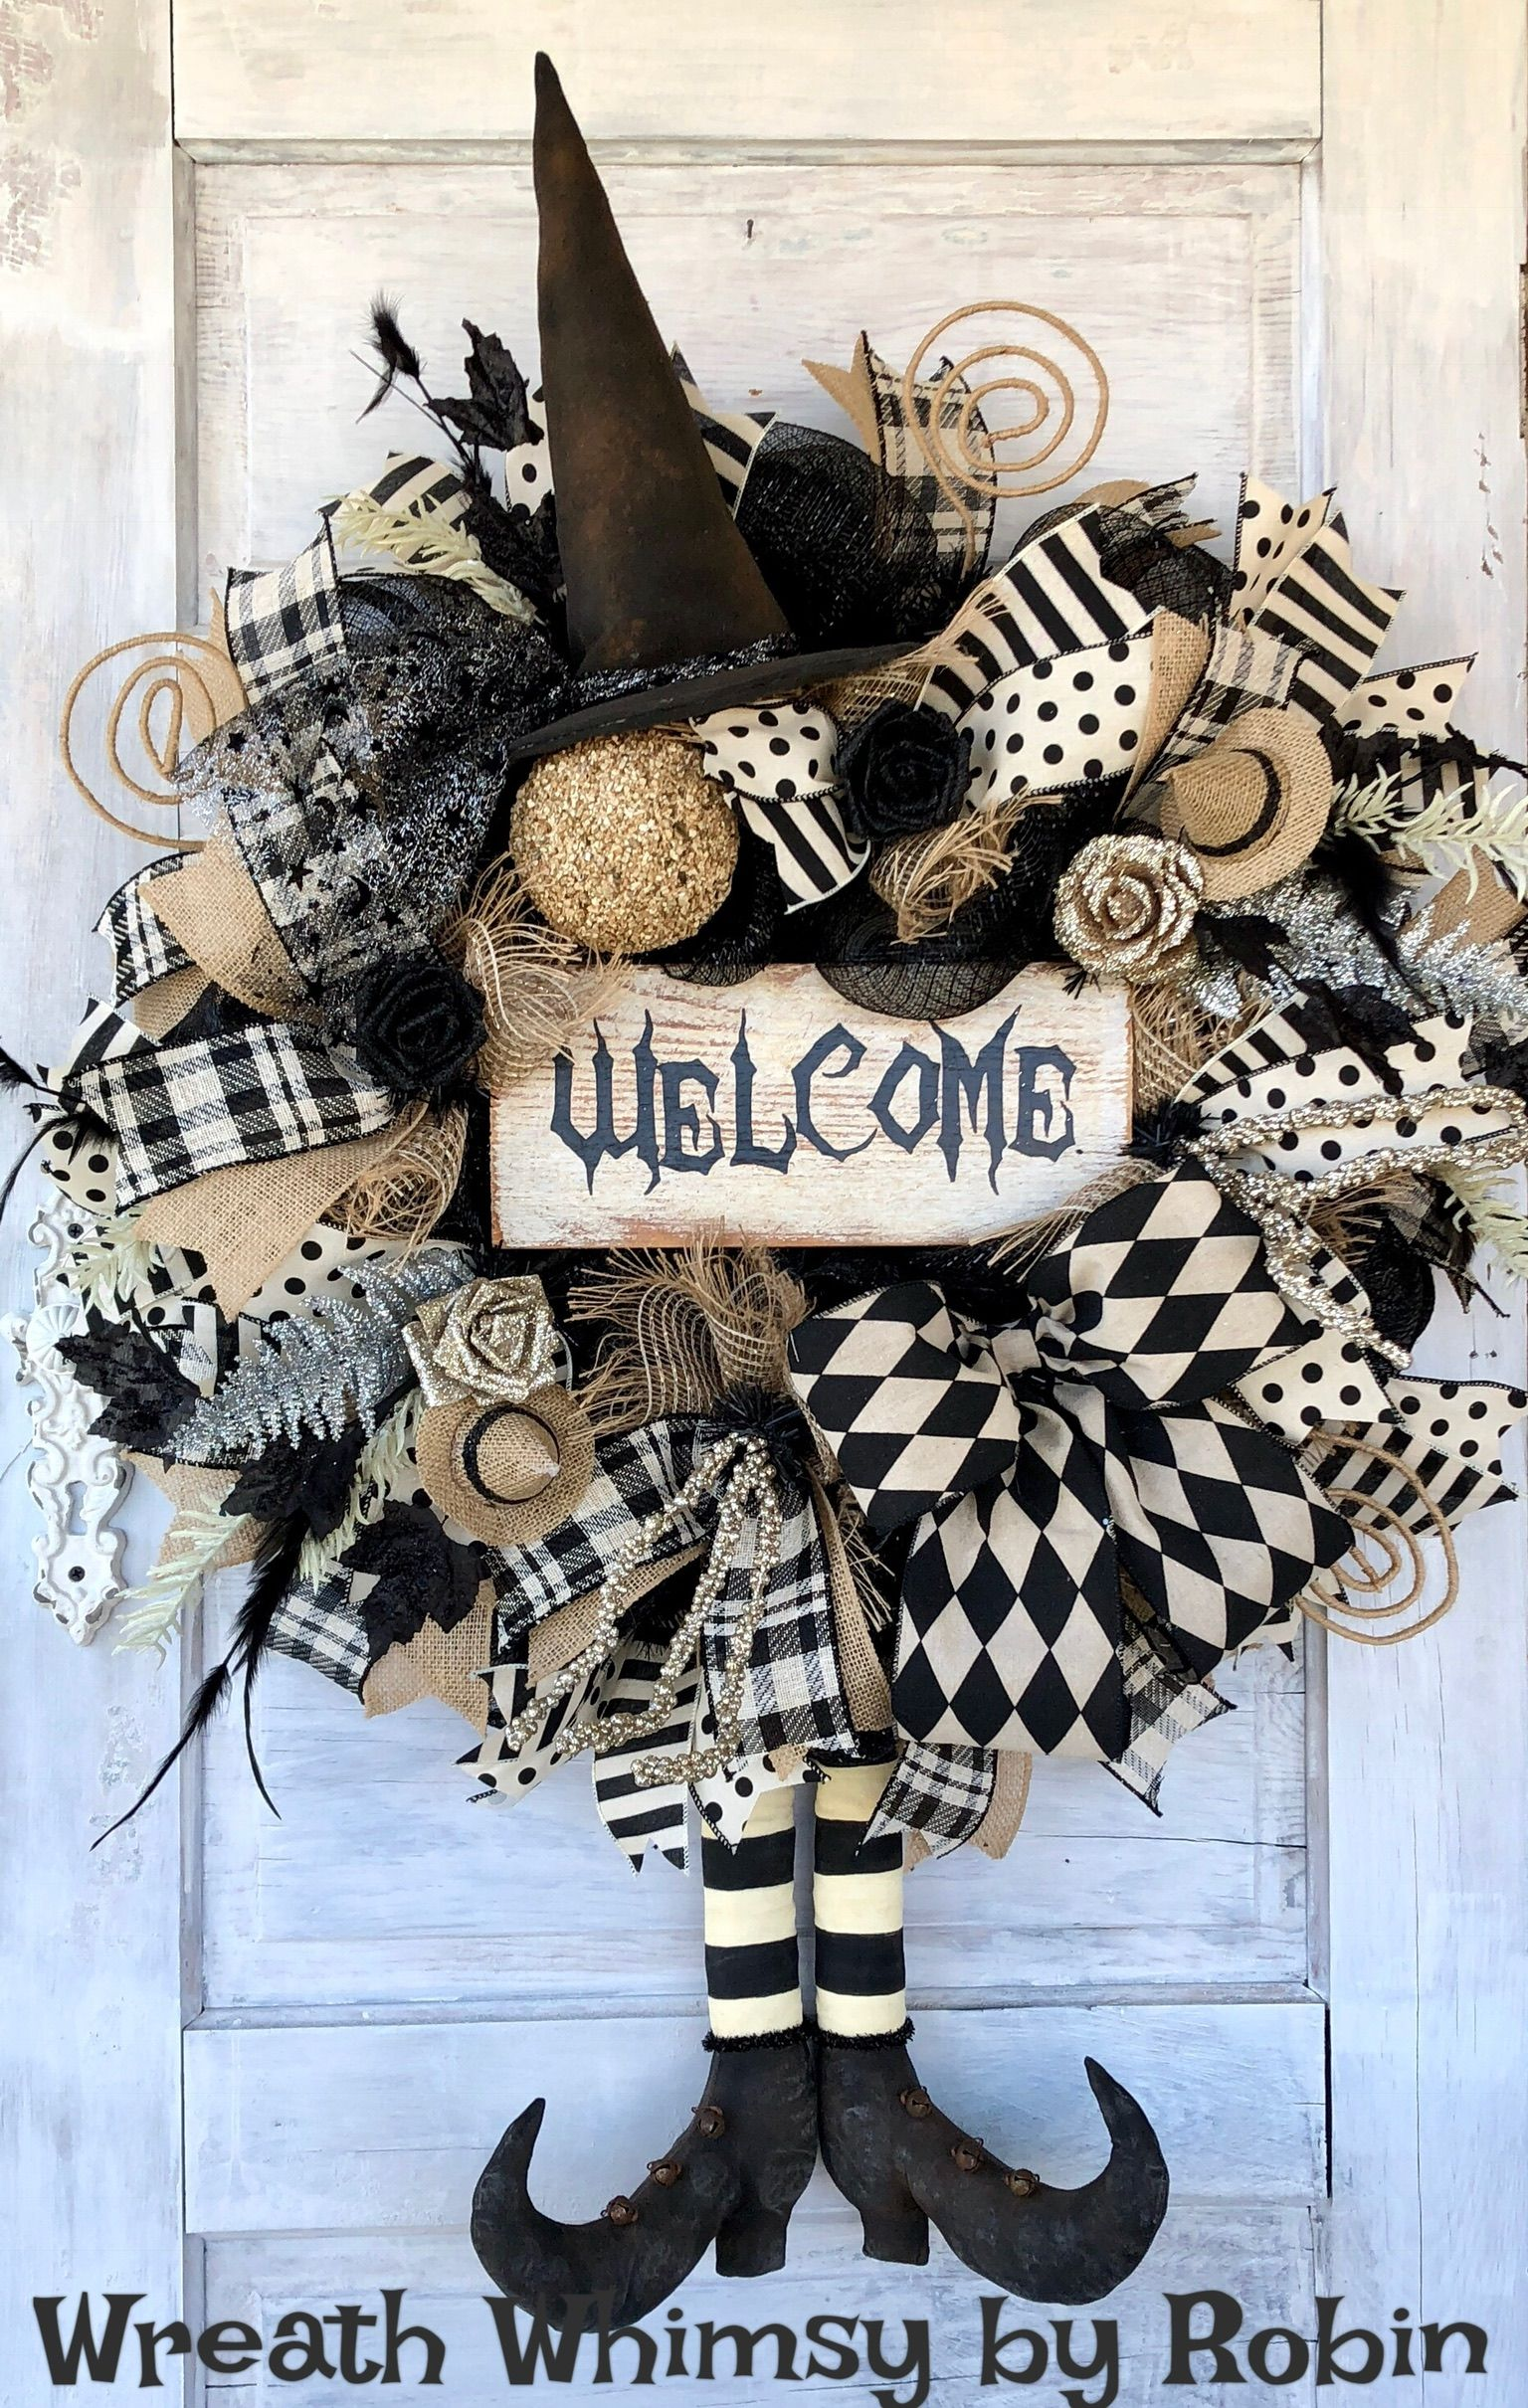 Unique Custom Made Wreaths for any Occasion by Wre